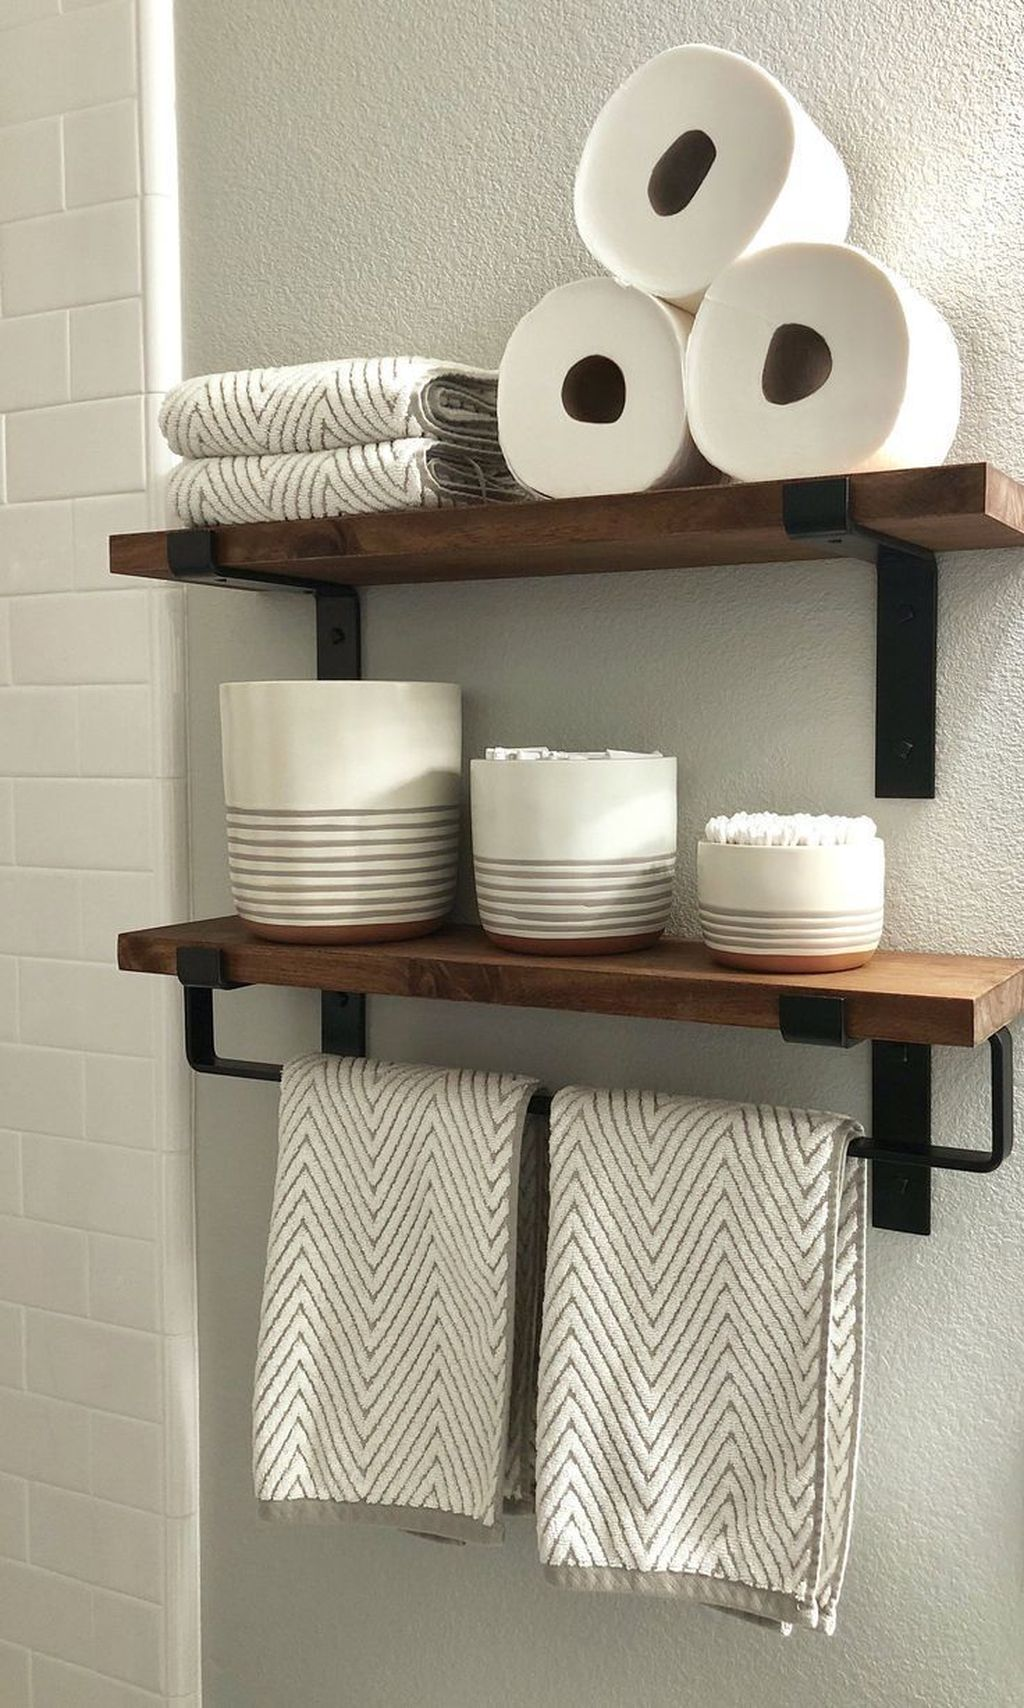 Amazing Bathroom Storage Design Ideas For Small Space 15